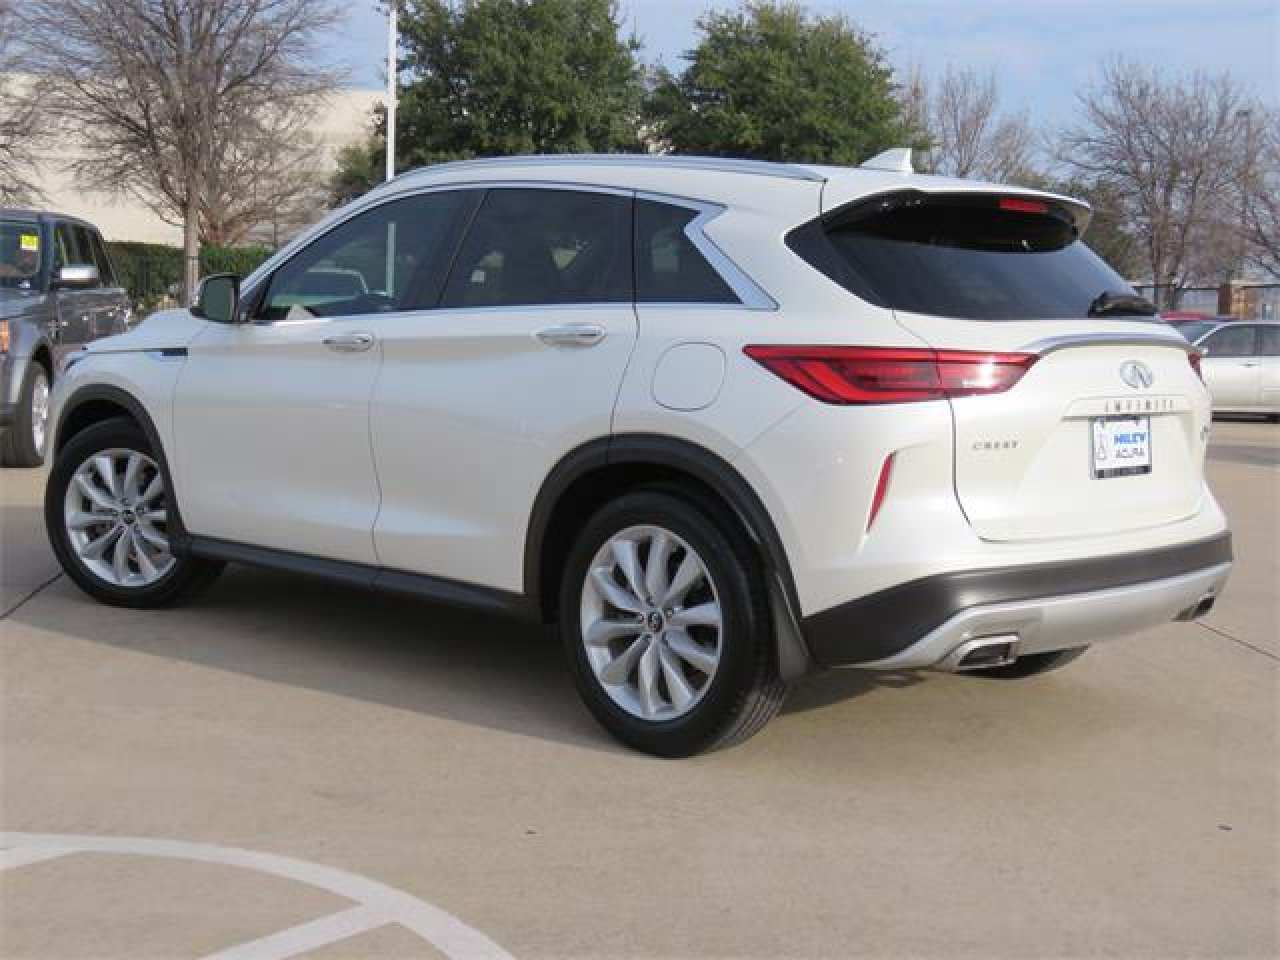 95 All New Best 2019 Infiniti Qx50 Kbb Review Images for Best 2019 Infiniti Qx50 Kbb Review